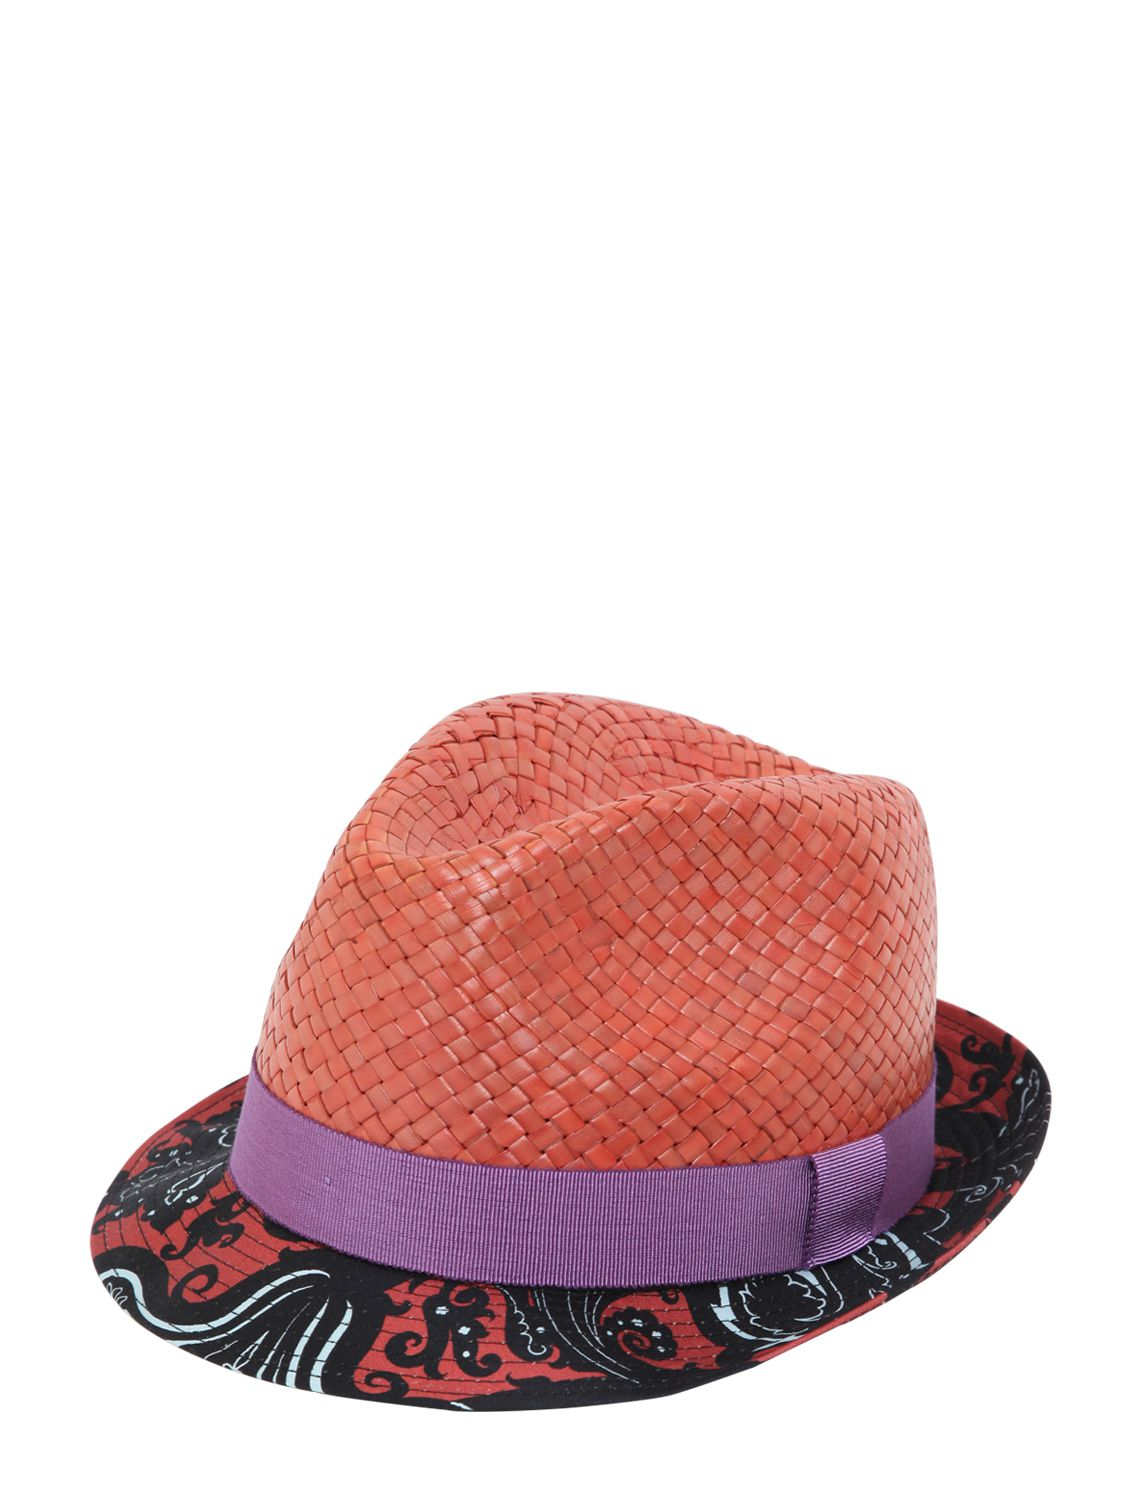 Lyst - Etro Woven Straw Hat With Printed Cotton Brim in Orange for Men 13023b6170d8